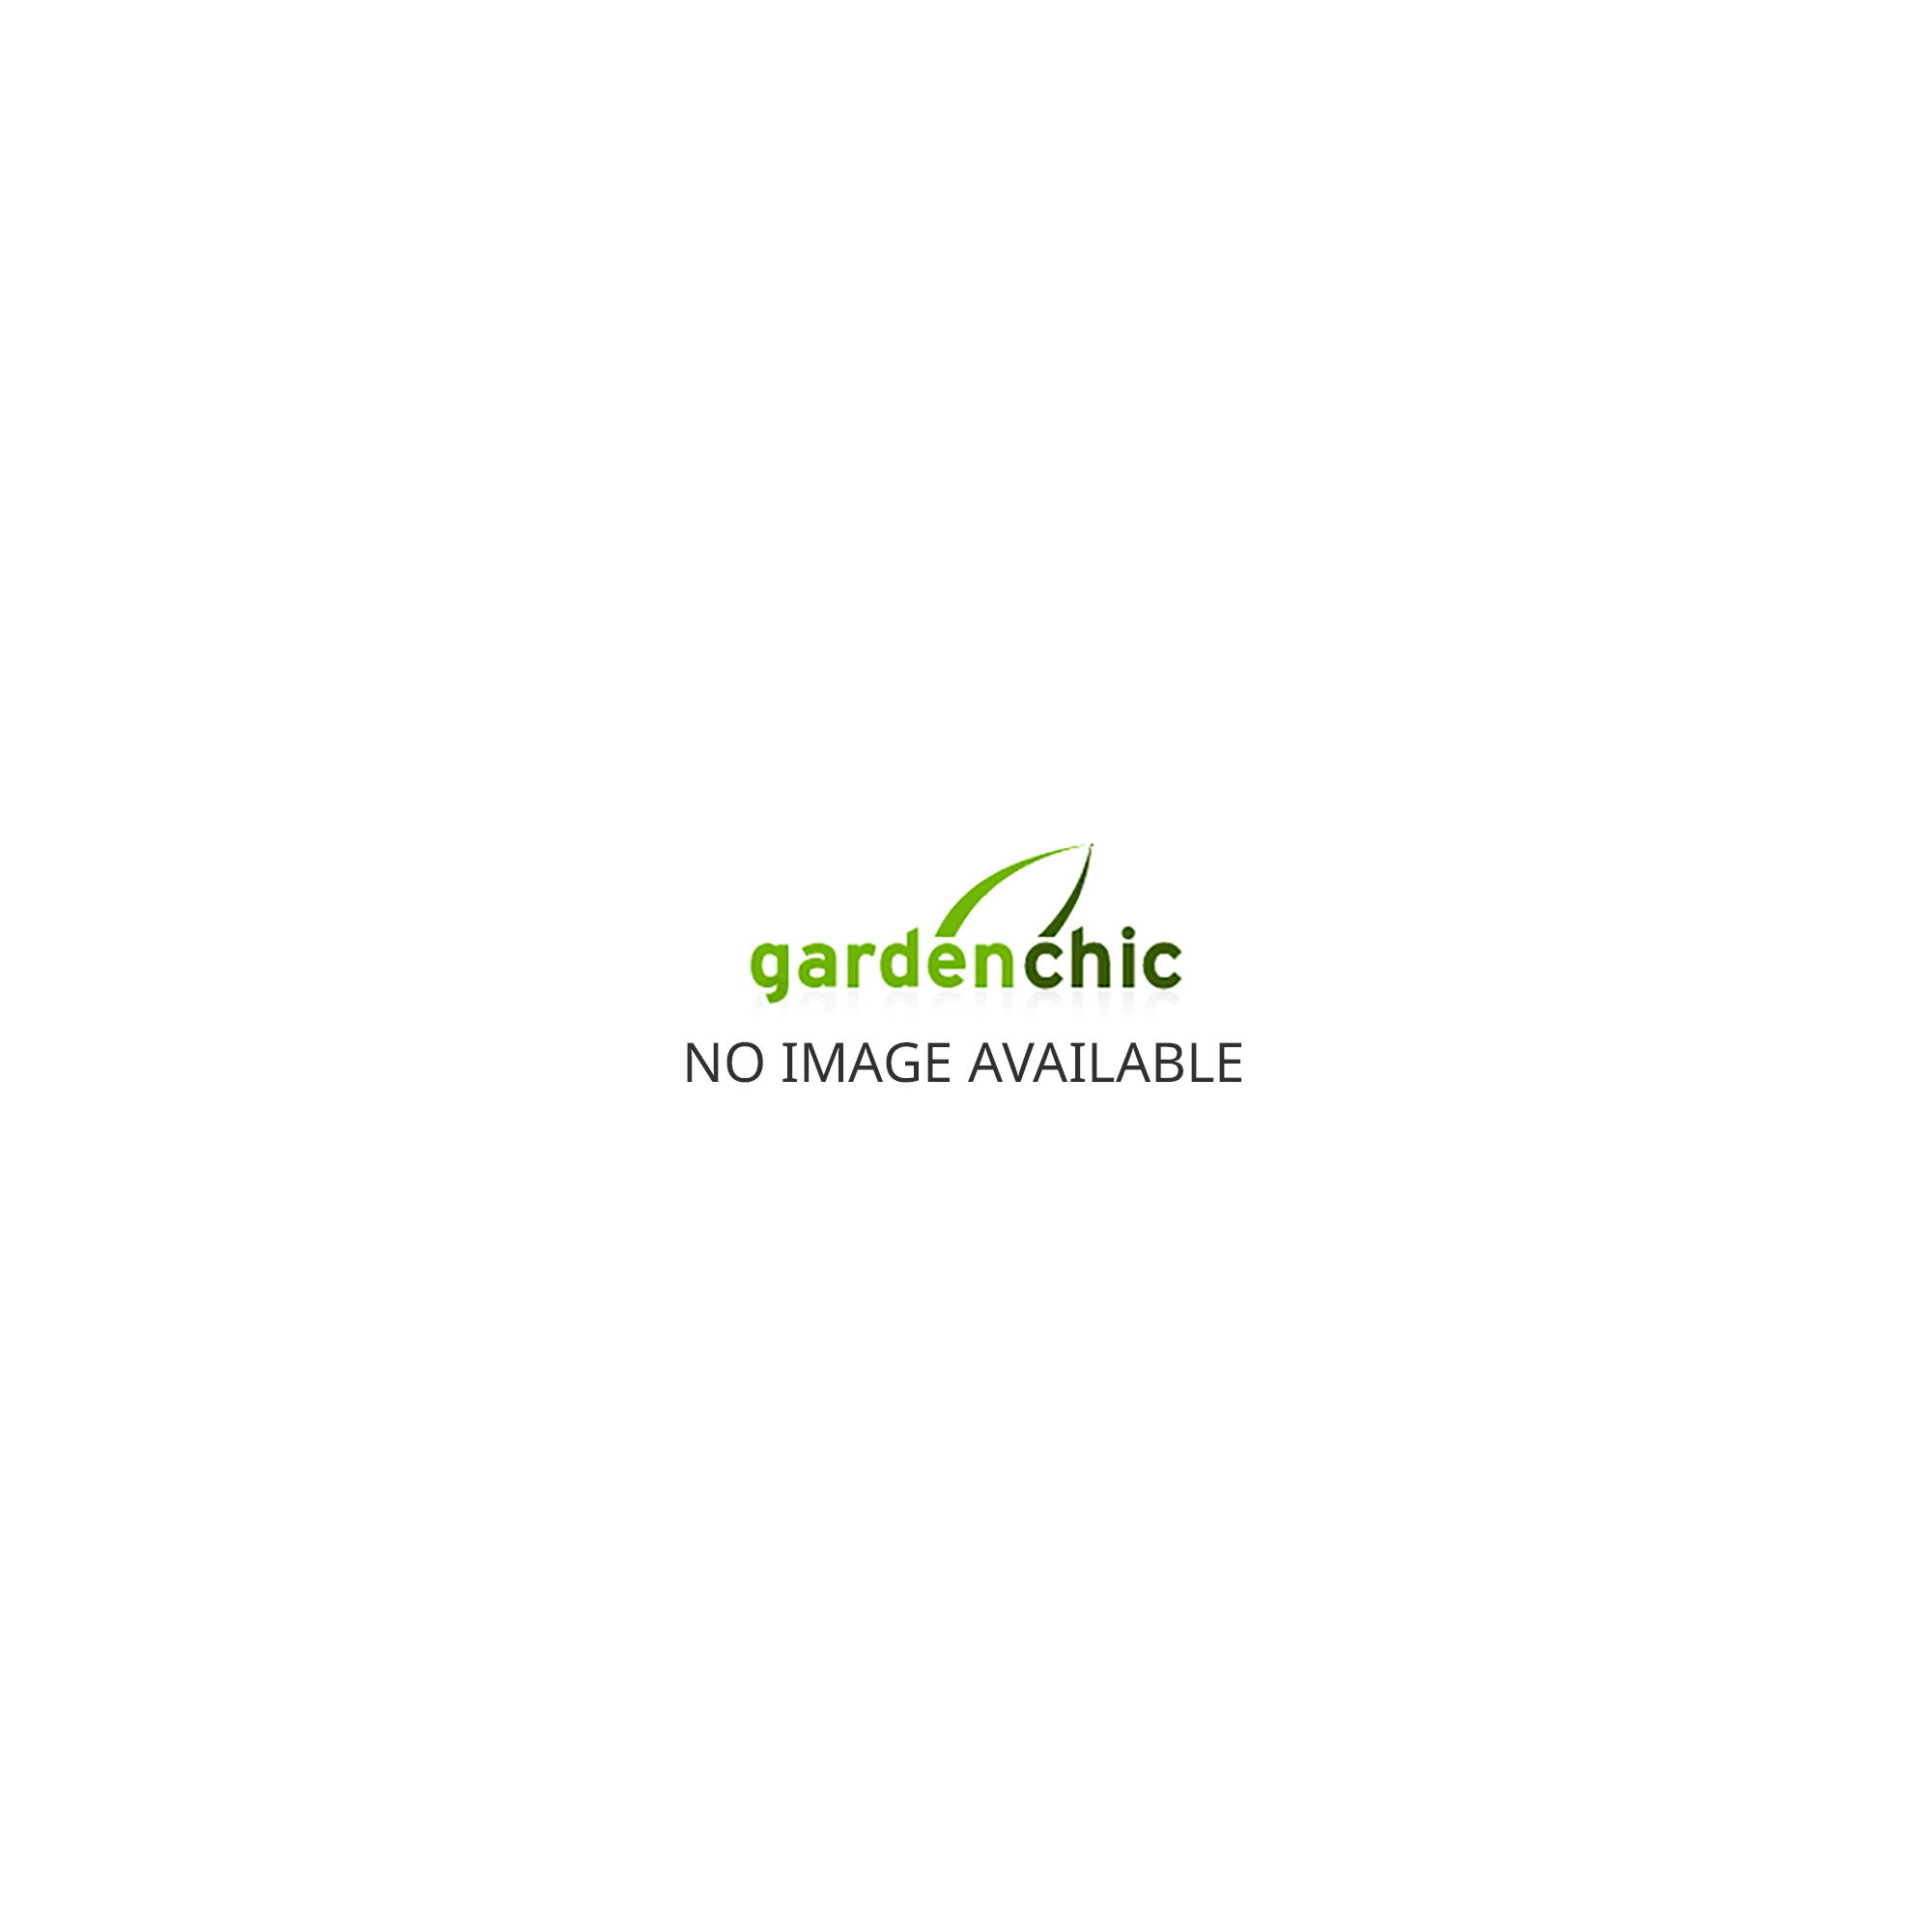 Orion 5000 8ft x 6ft Greenhouse - Silver FREE Matching Base until APRIL 2018